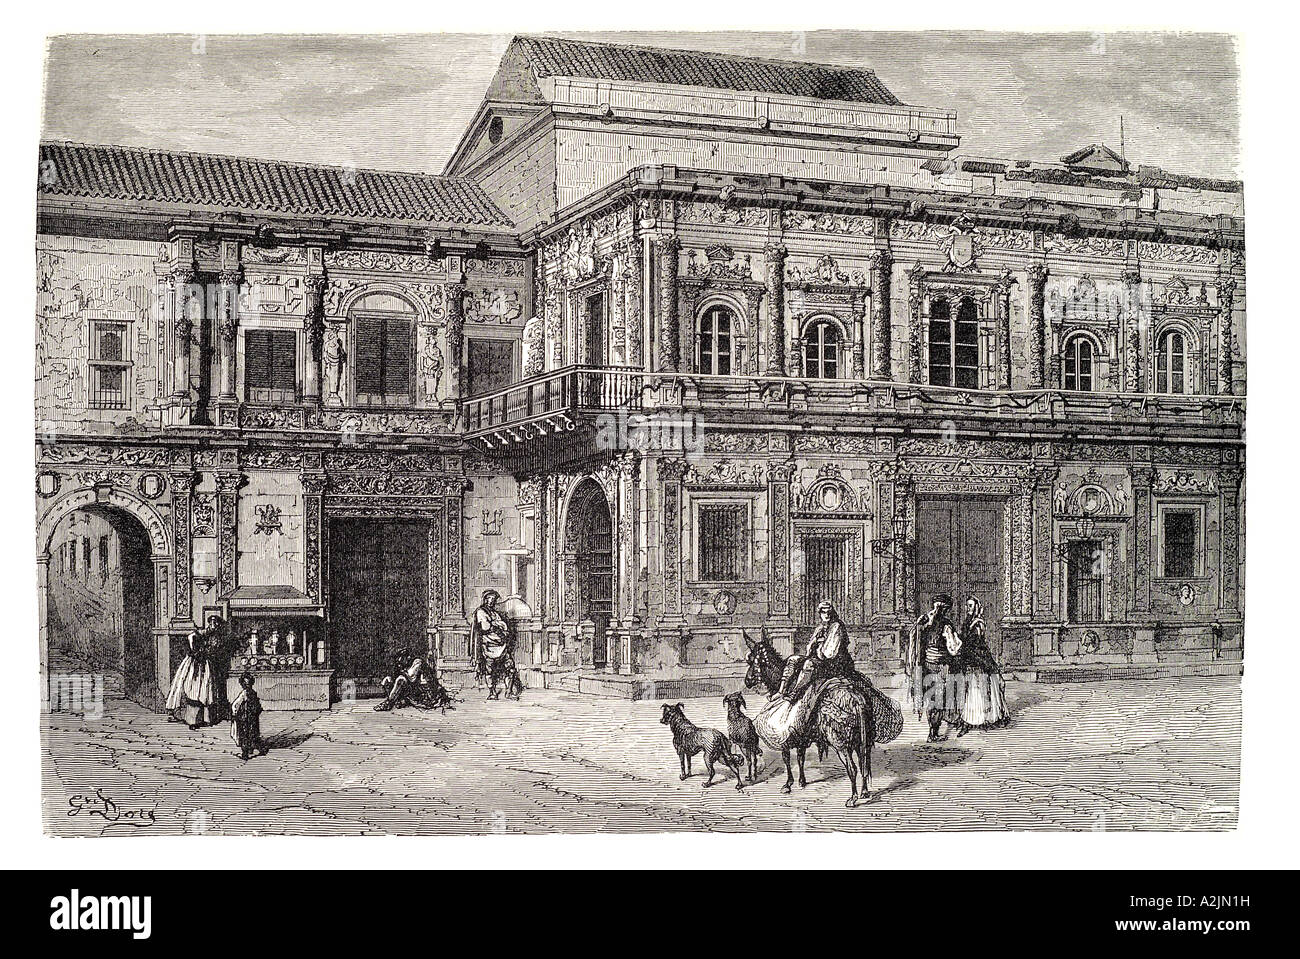 a history of seville a spanish town Sevillanas are a song and dance form which is typical of the spanish town of  seville, but they are sung and danced across the andalusian region  despite  their long history, the word 'sevillanas' meaning a type of spanish dance only  made.